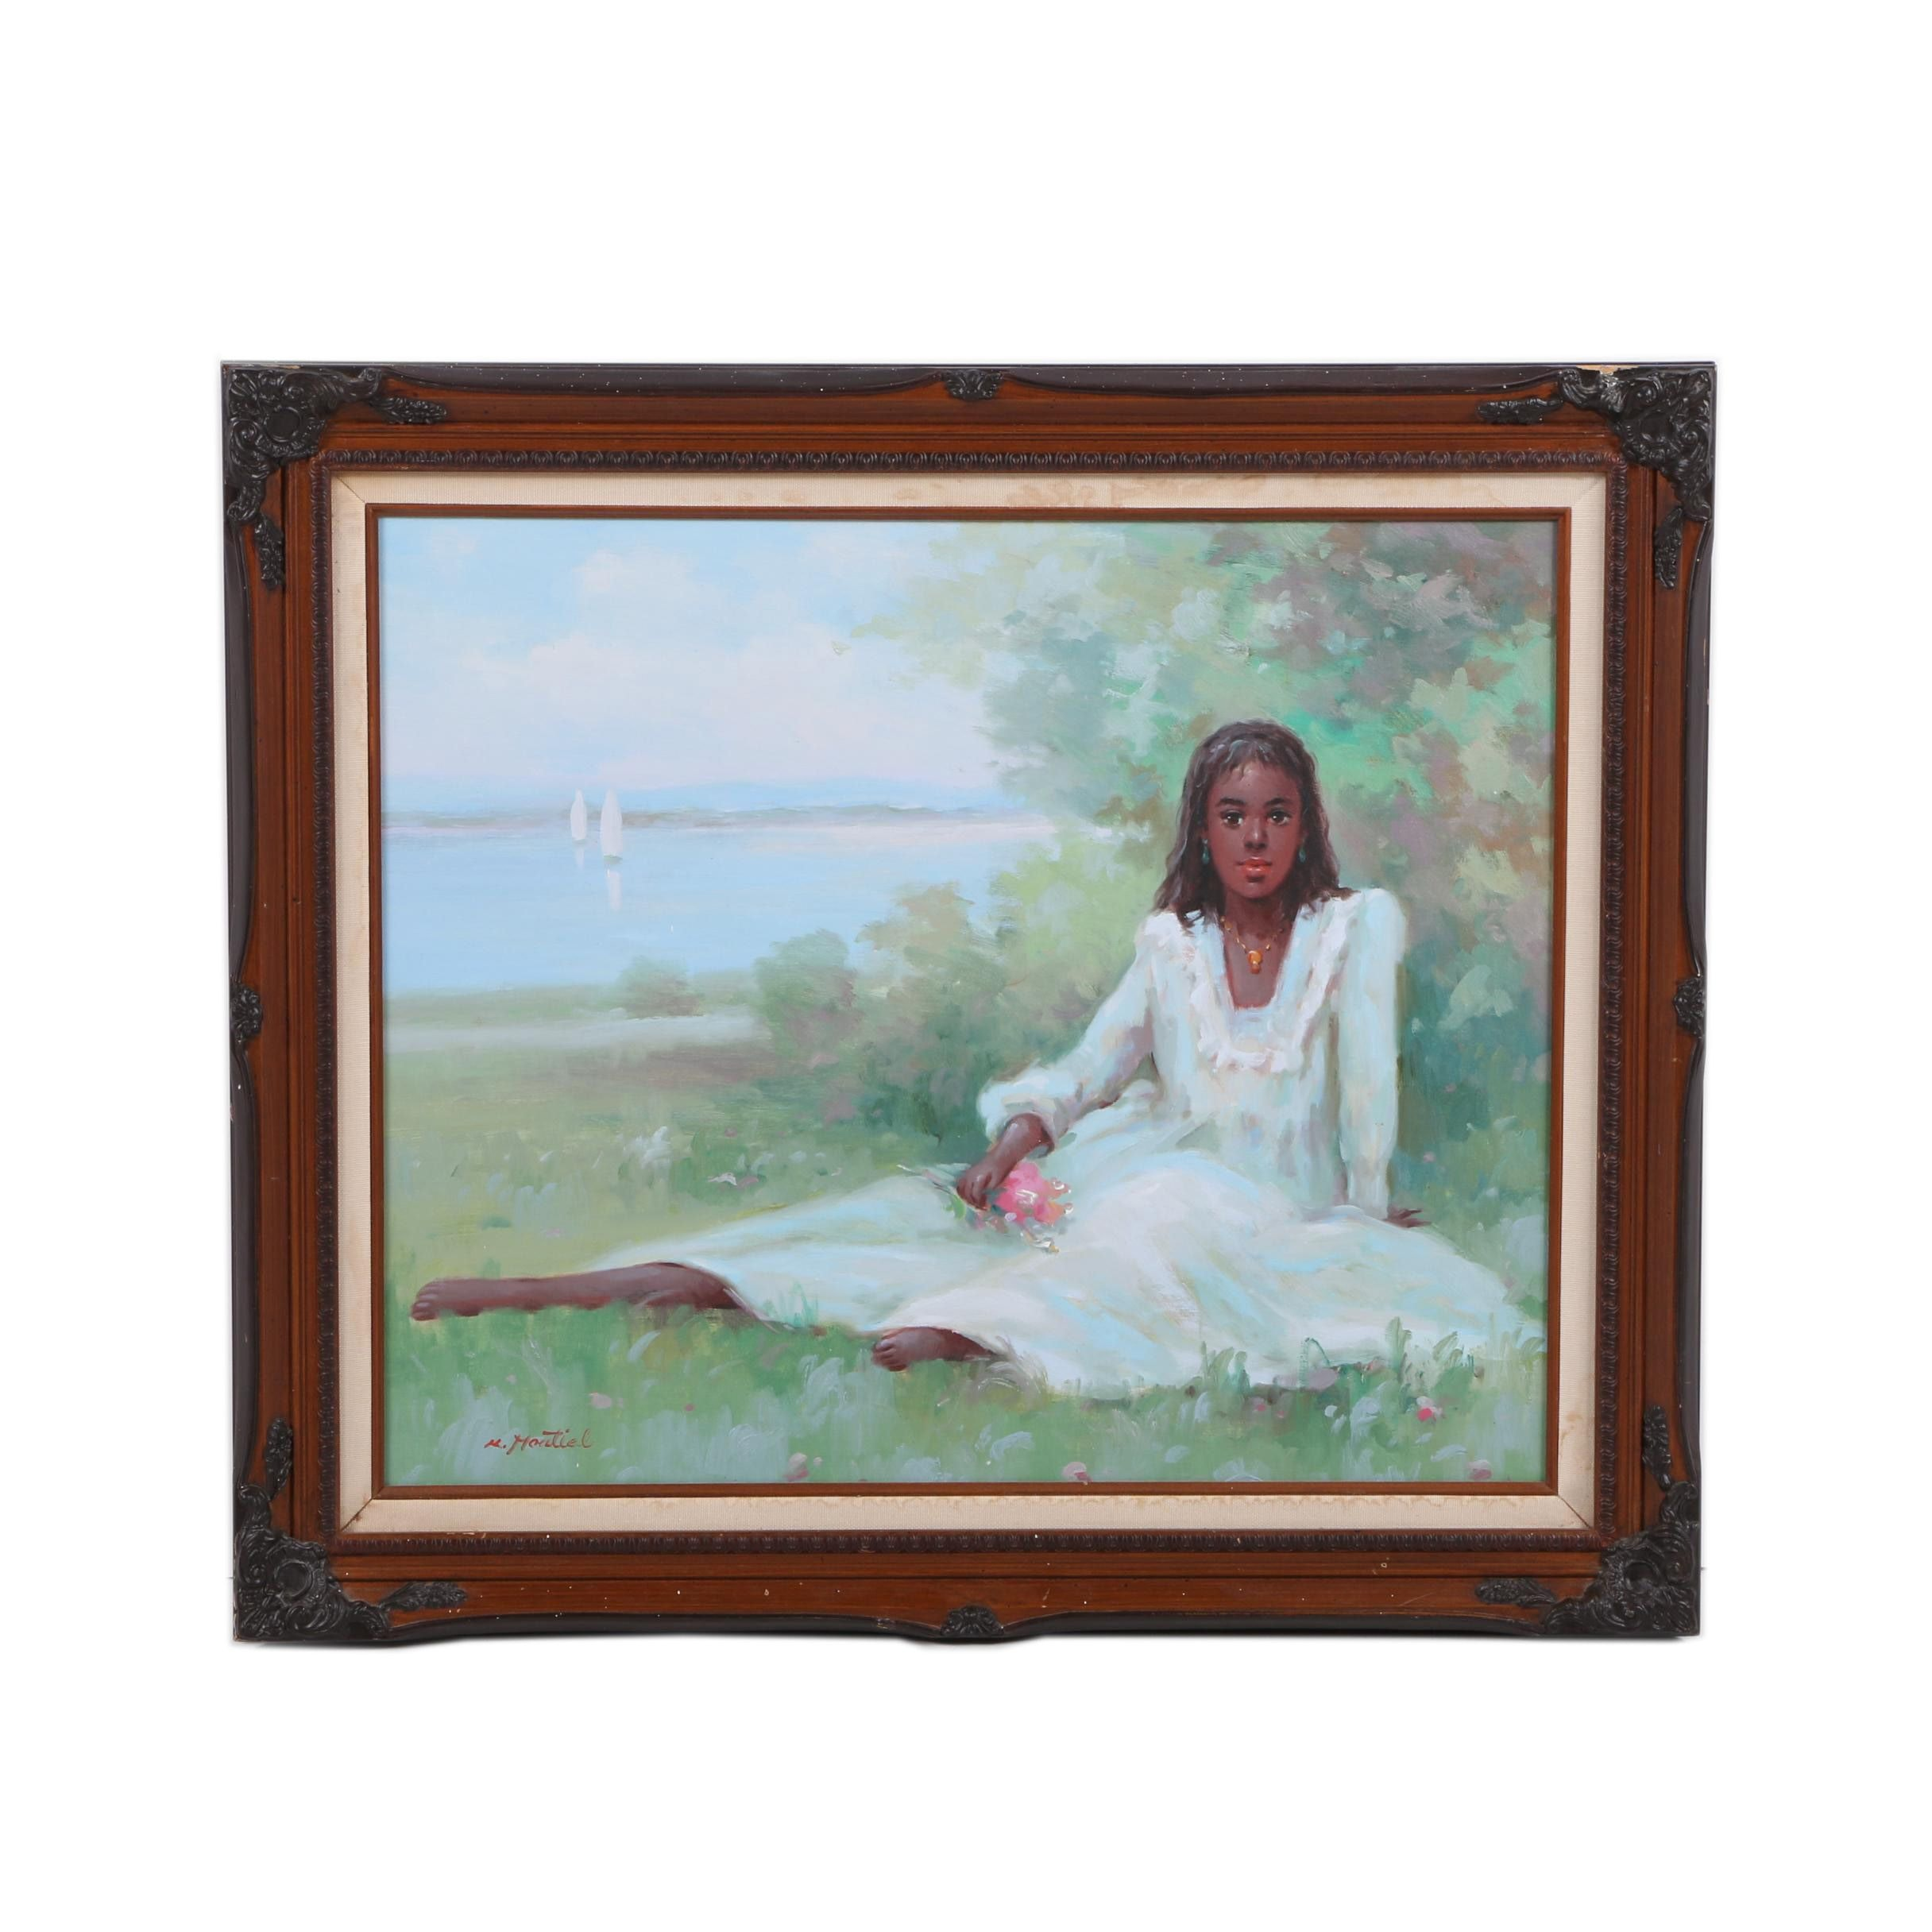 M. Montial Oil Painting on Canvas of a Young Woman